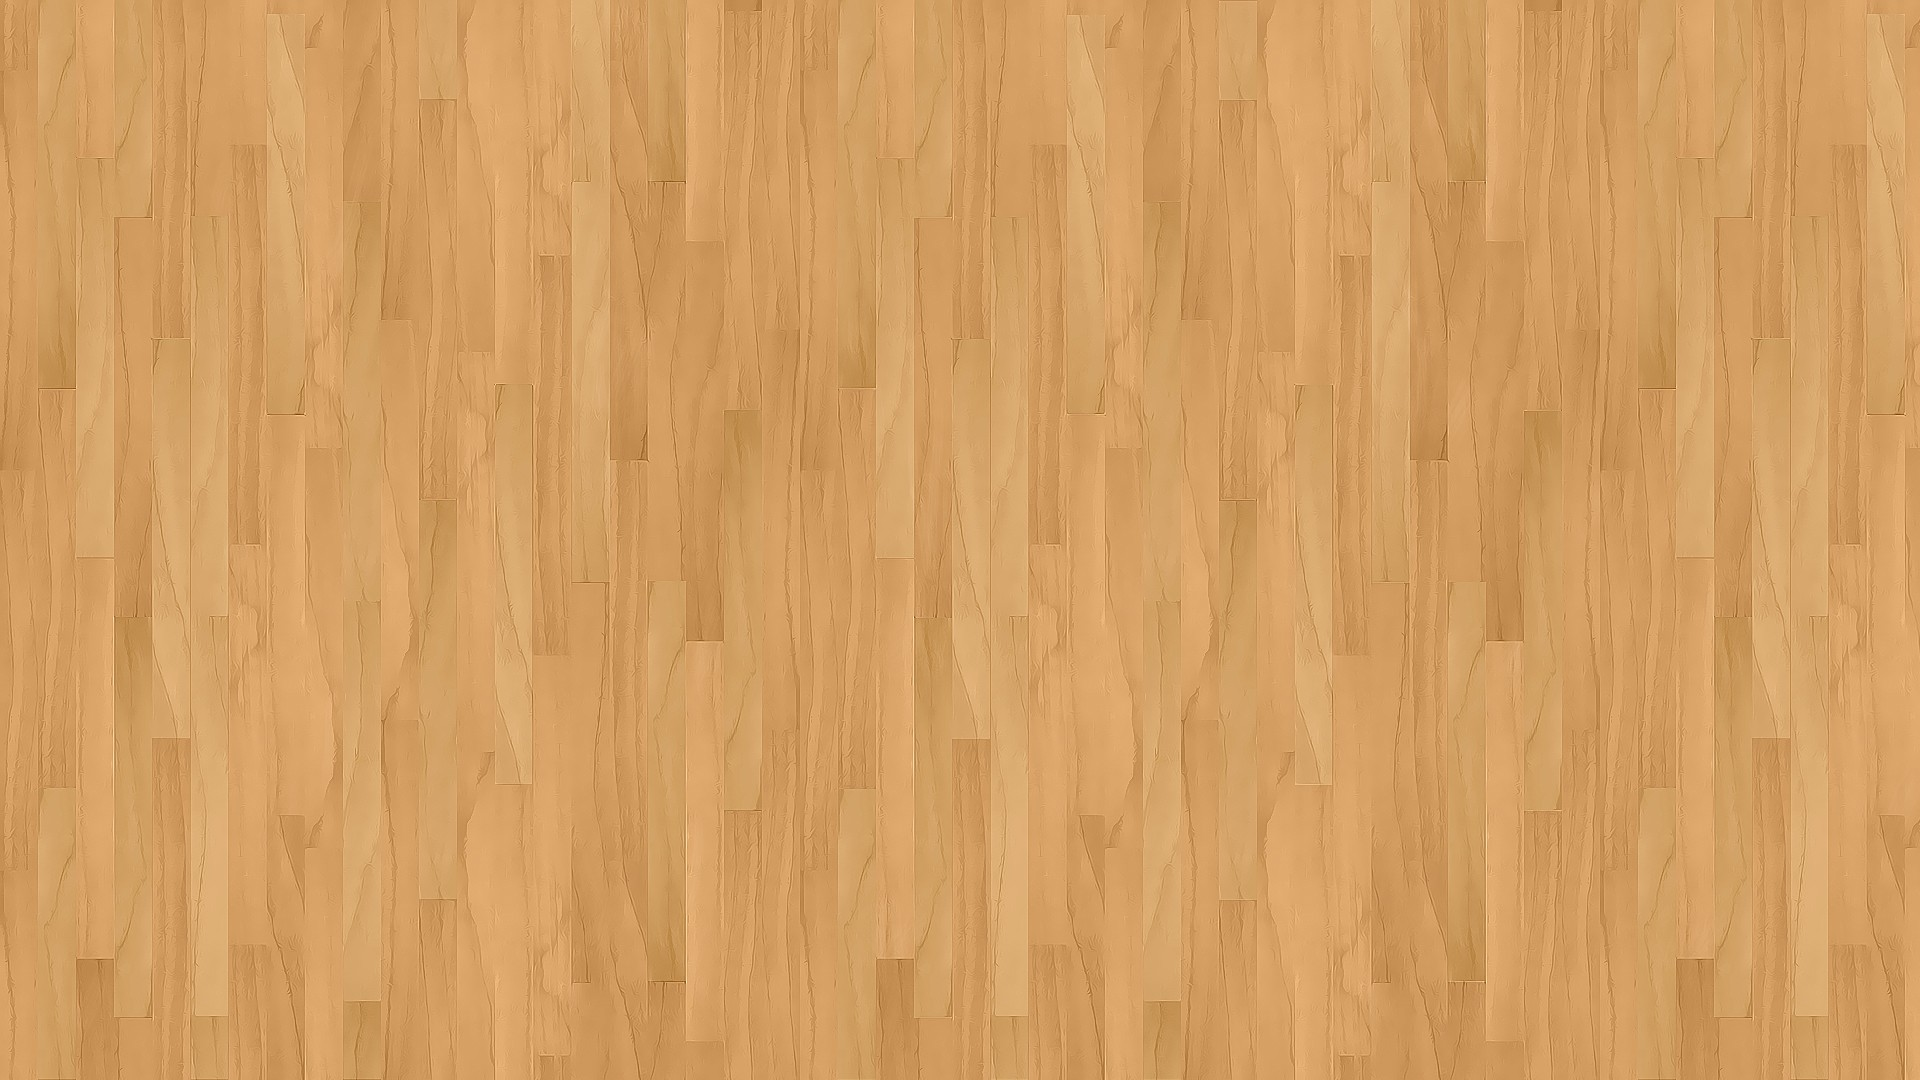 35 hd wood wallpapers backgrounds for free download for Cheap plain white wallpaper